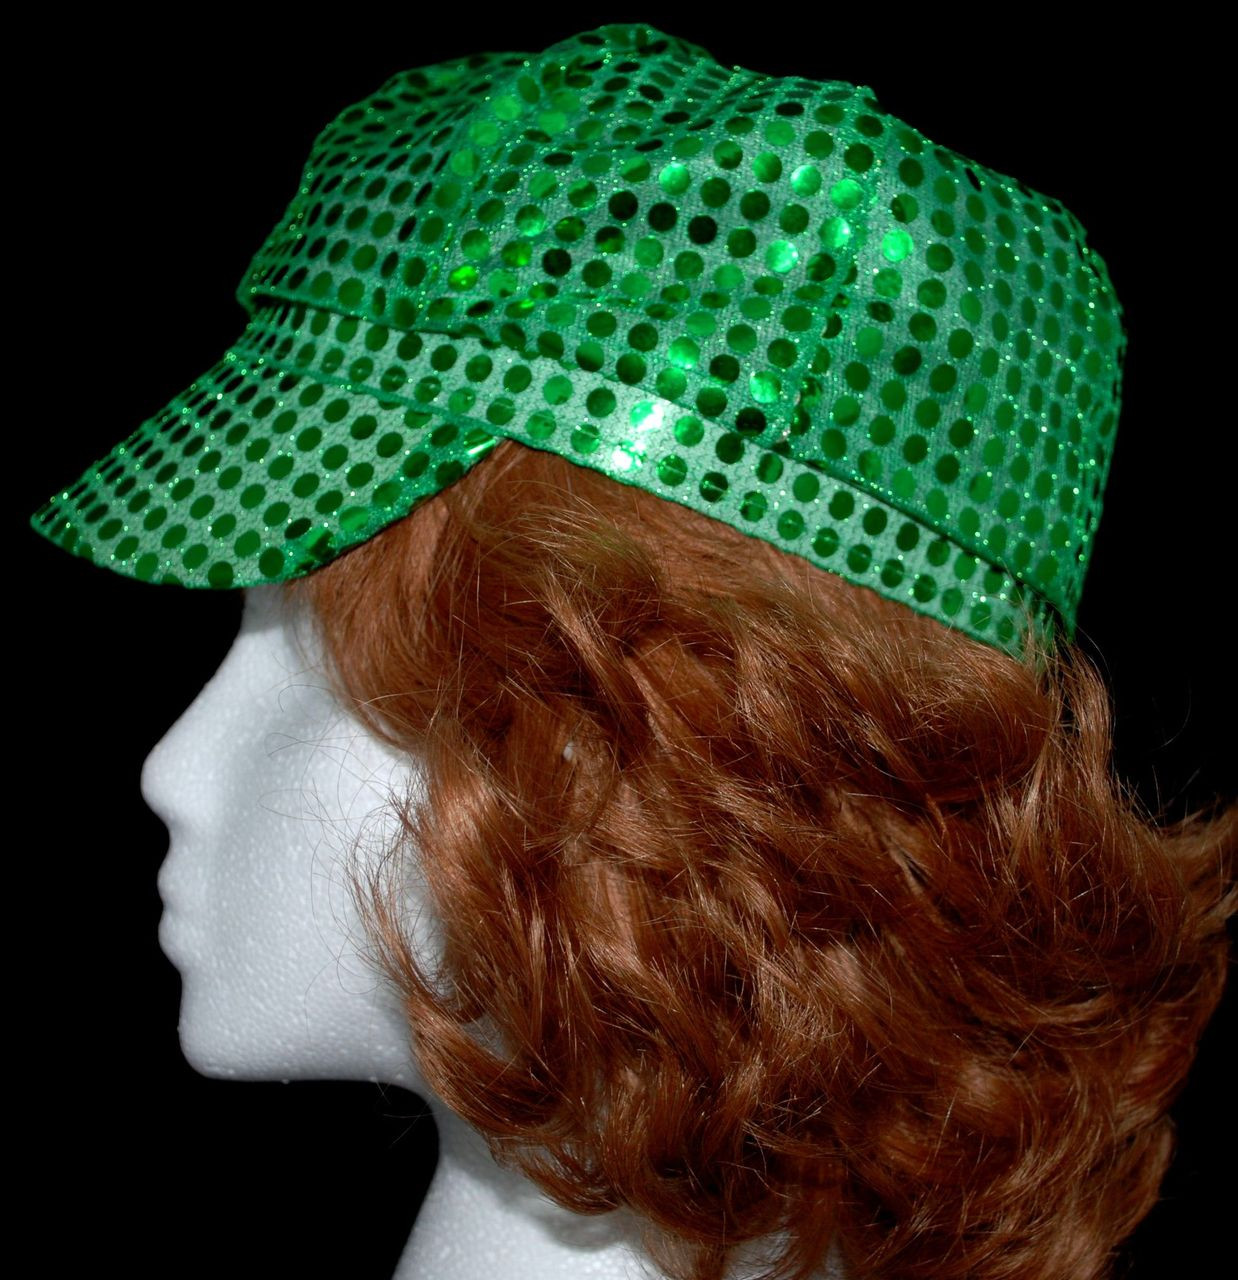 Bling Sequined Fabric Newsboy Cap in choice of colors